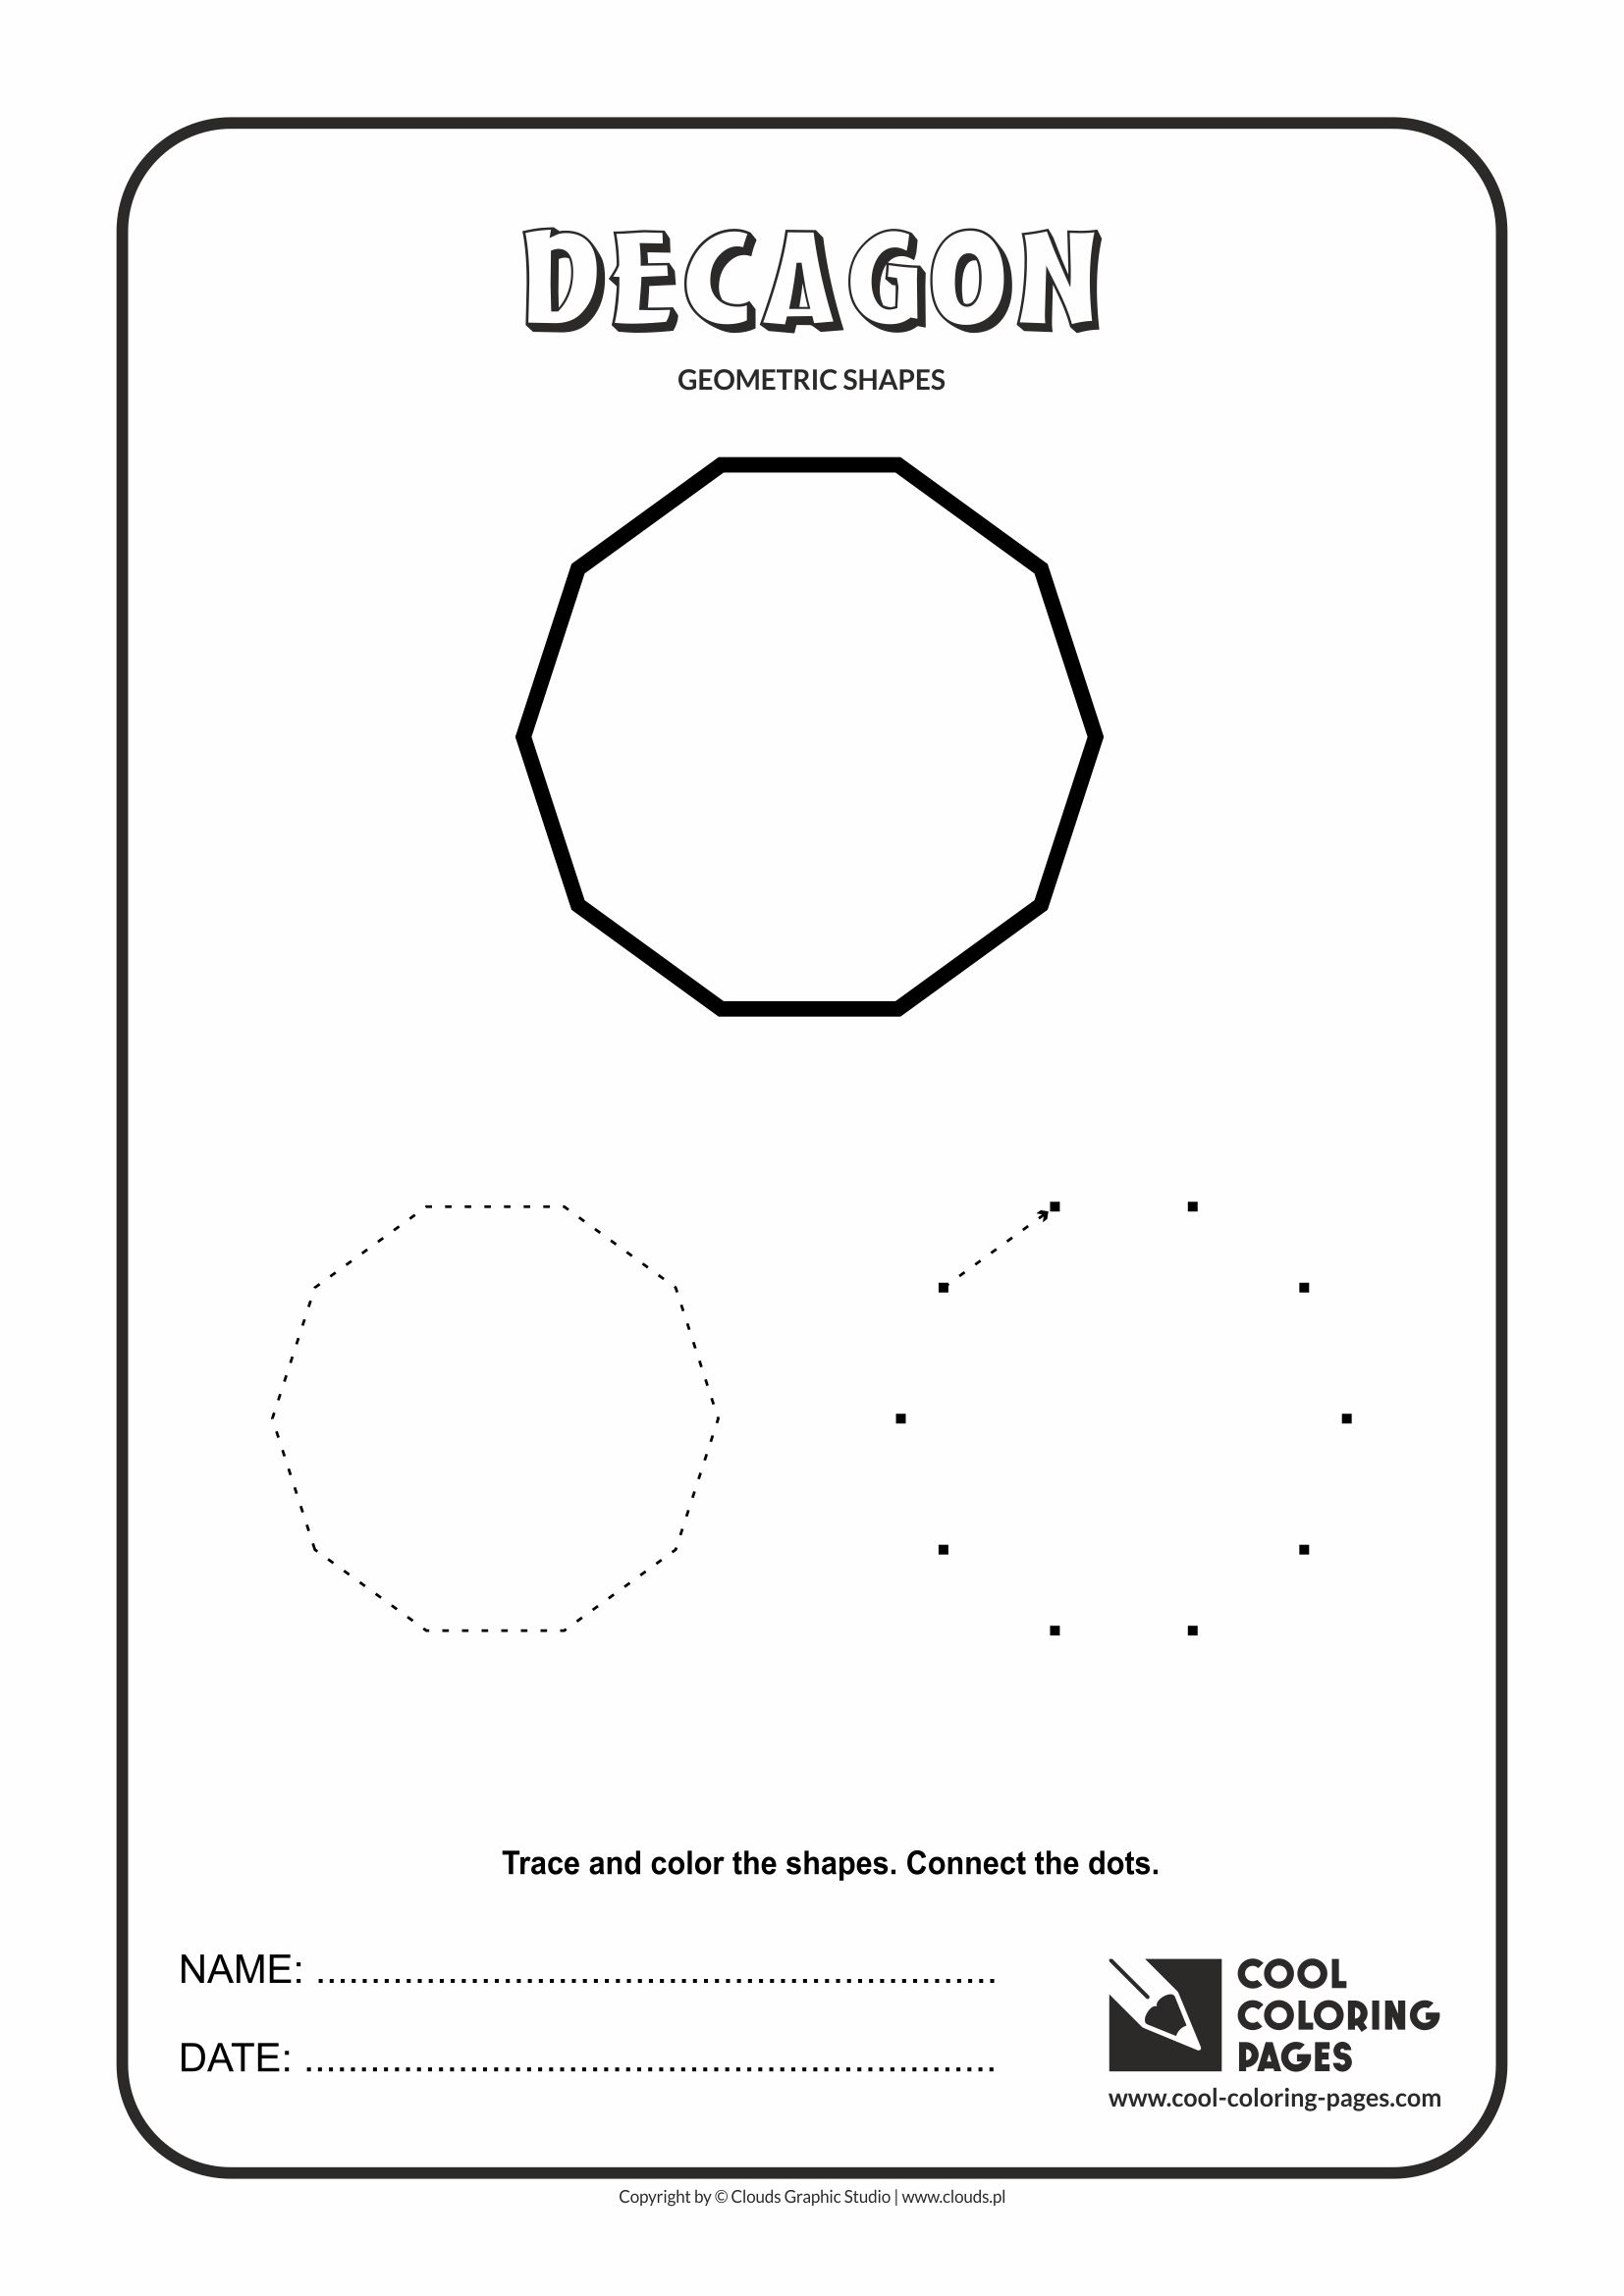 Cool coloring pages geometric shapes cool coloring pages for Geometric shapes coloring pages